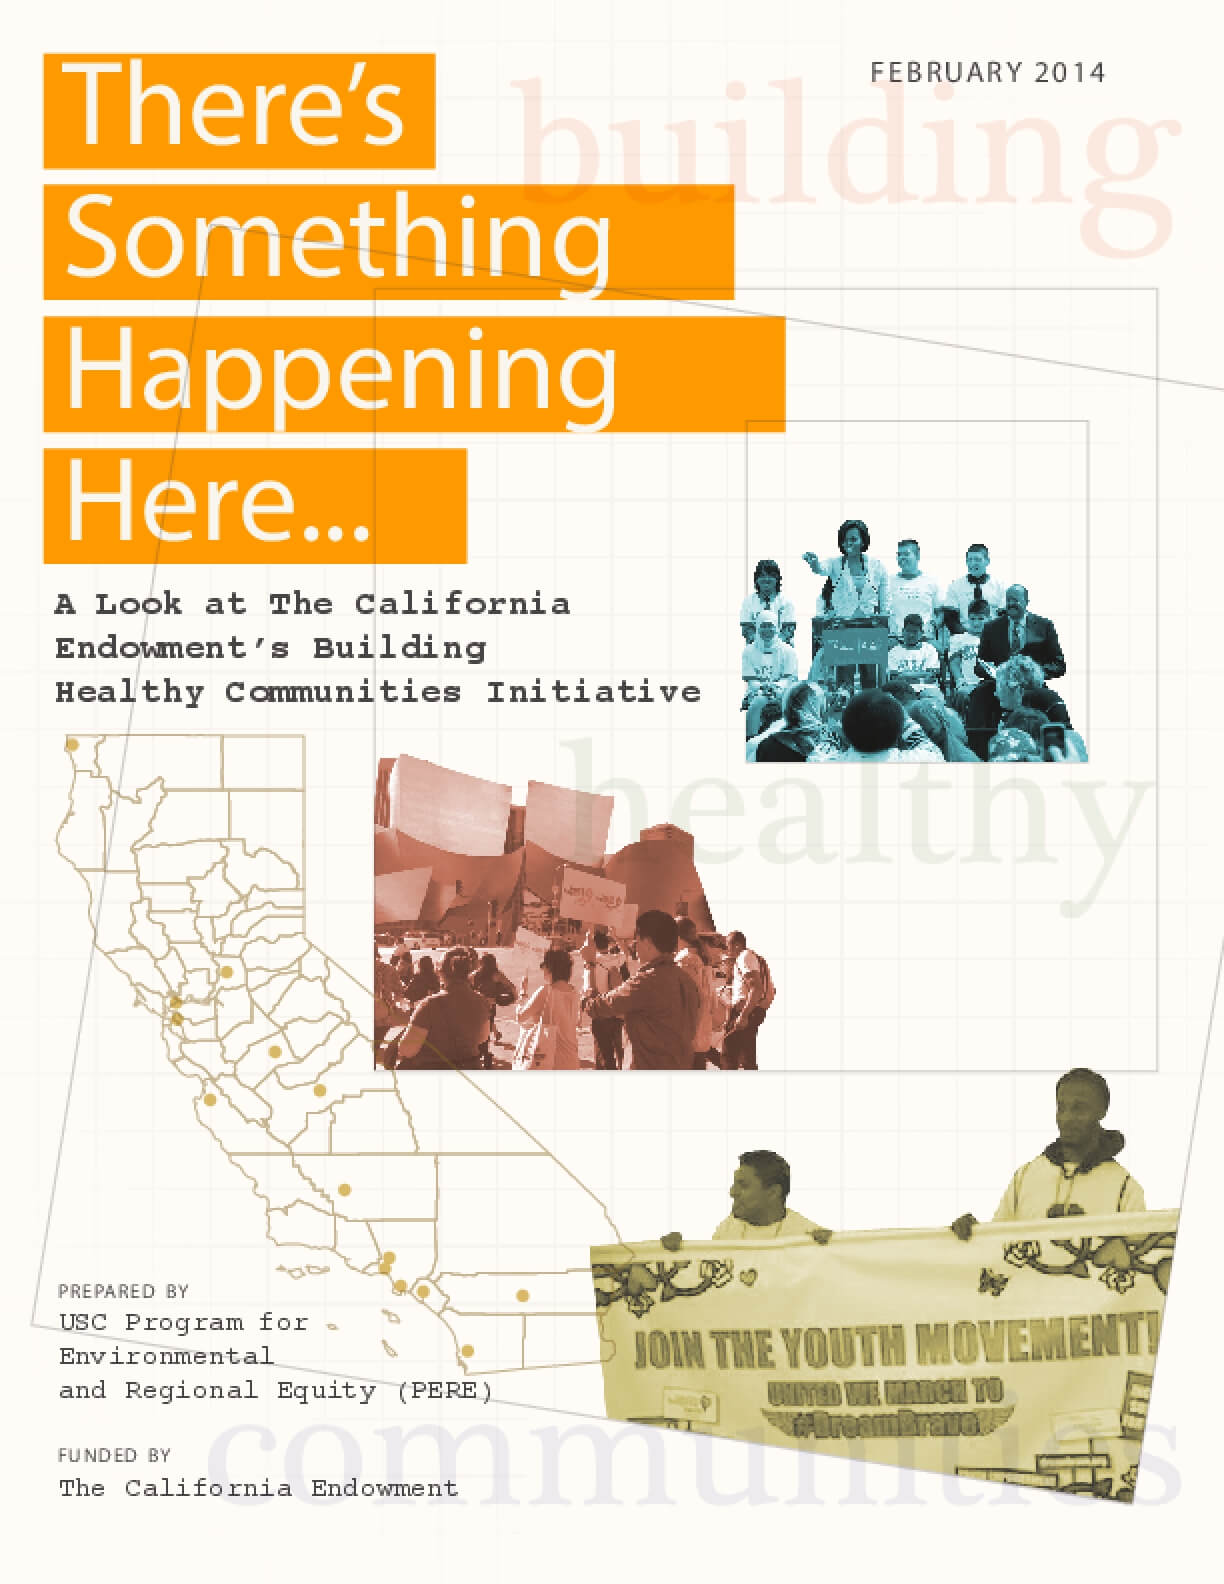 There's Something Happening Here: A Look at The California Endowment's Building Healthy Communities Initiative